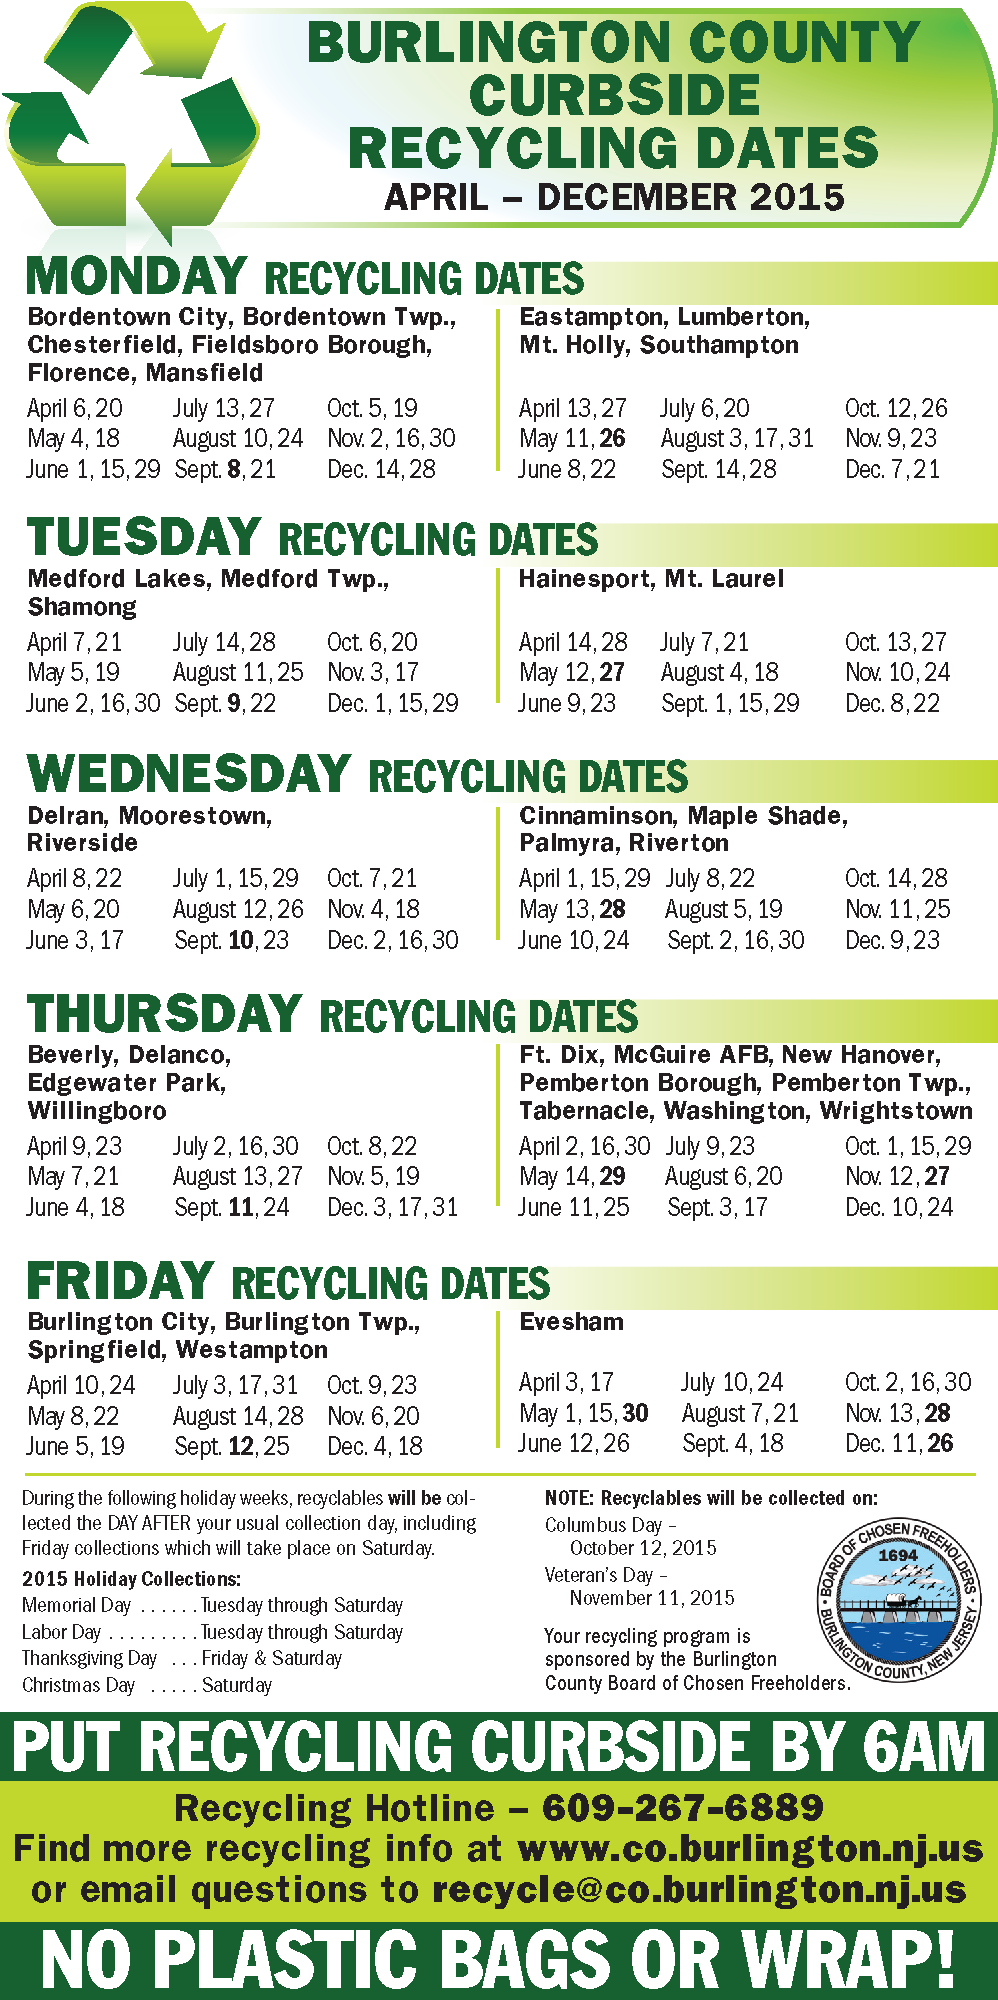 CurbsideRecyclingDates2015.png